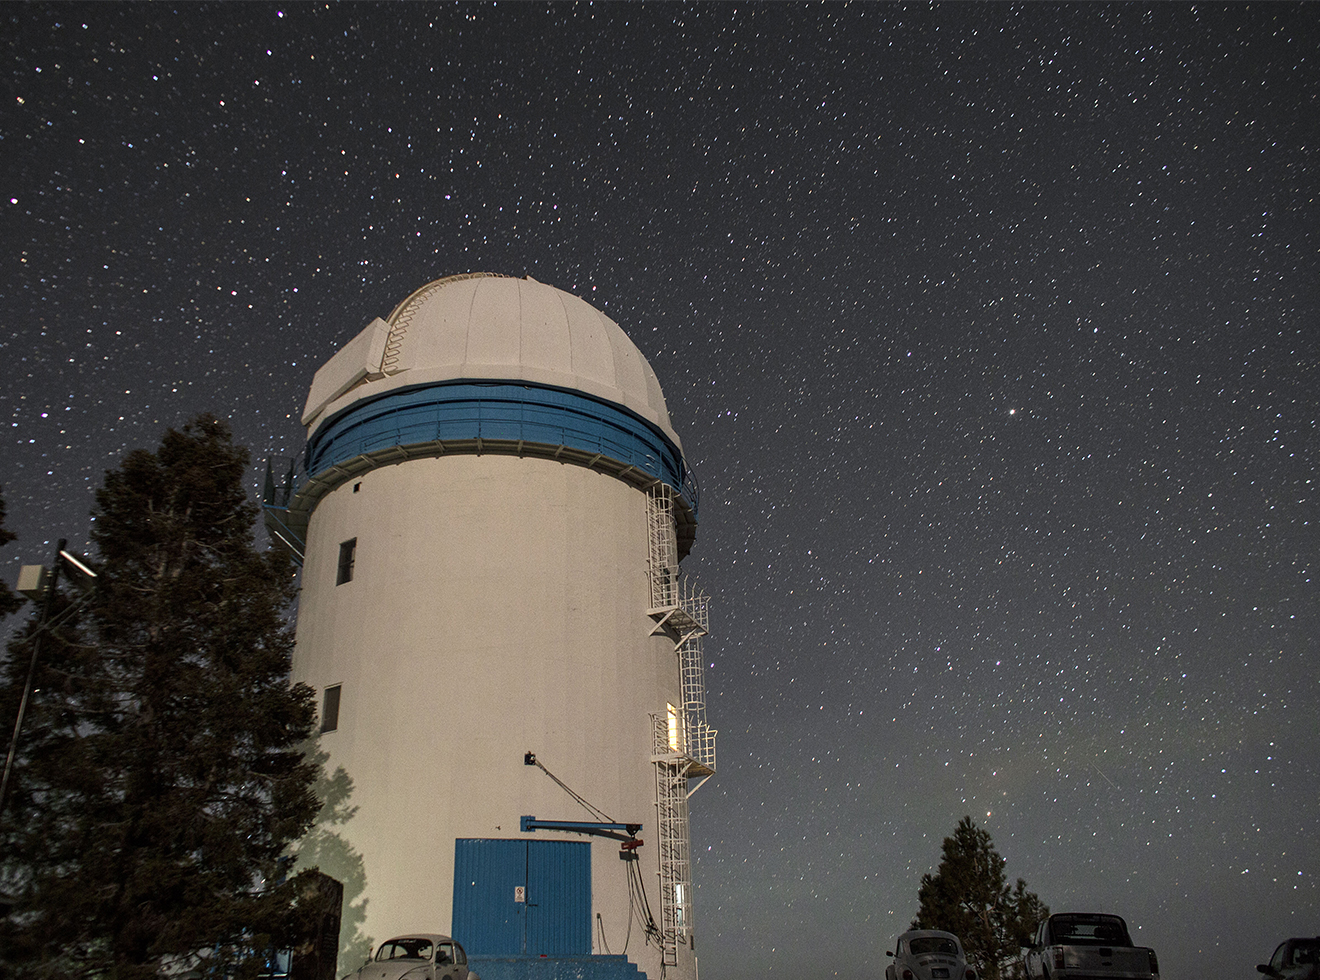 Mexico's National Astronomical Observatory